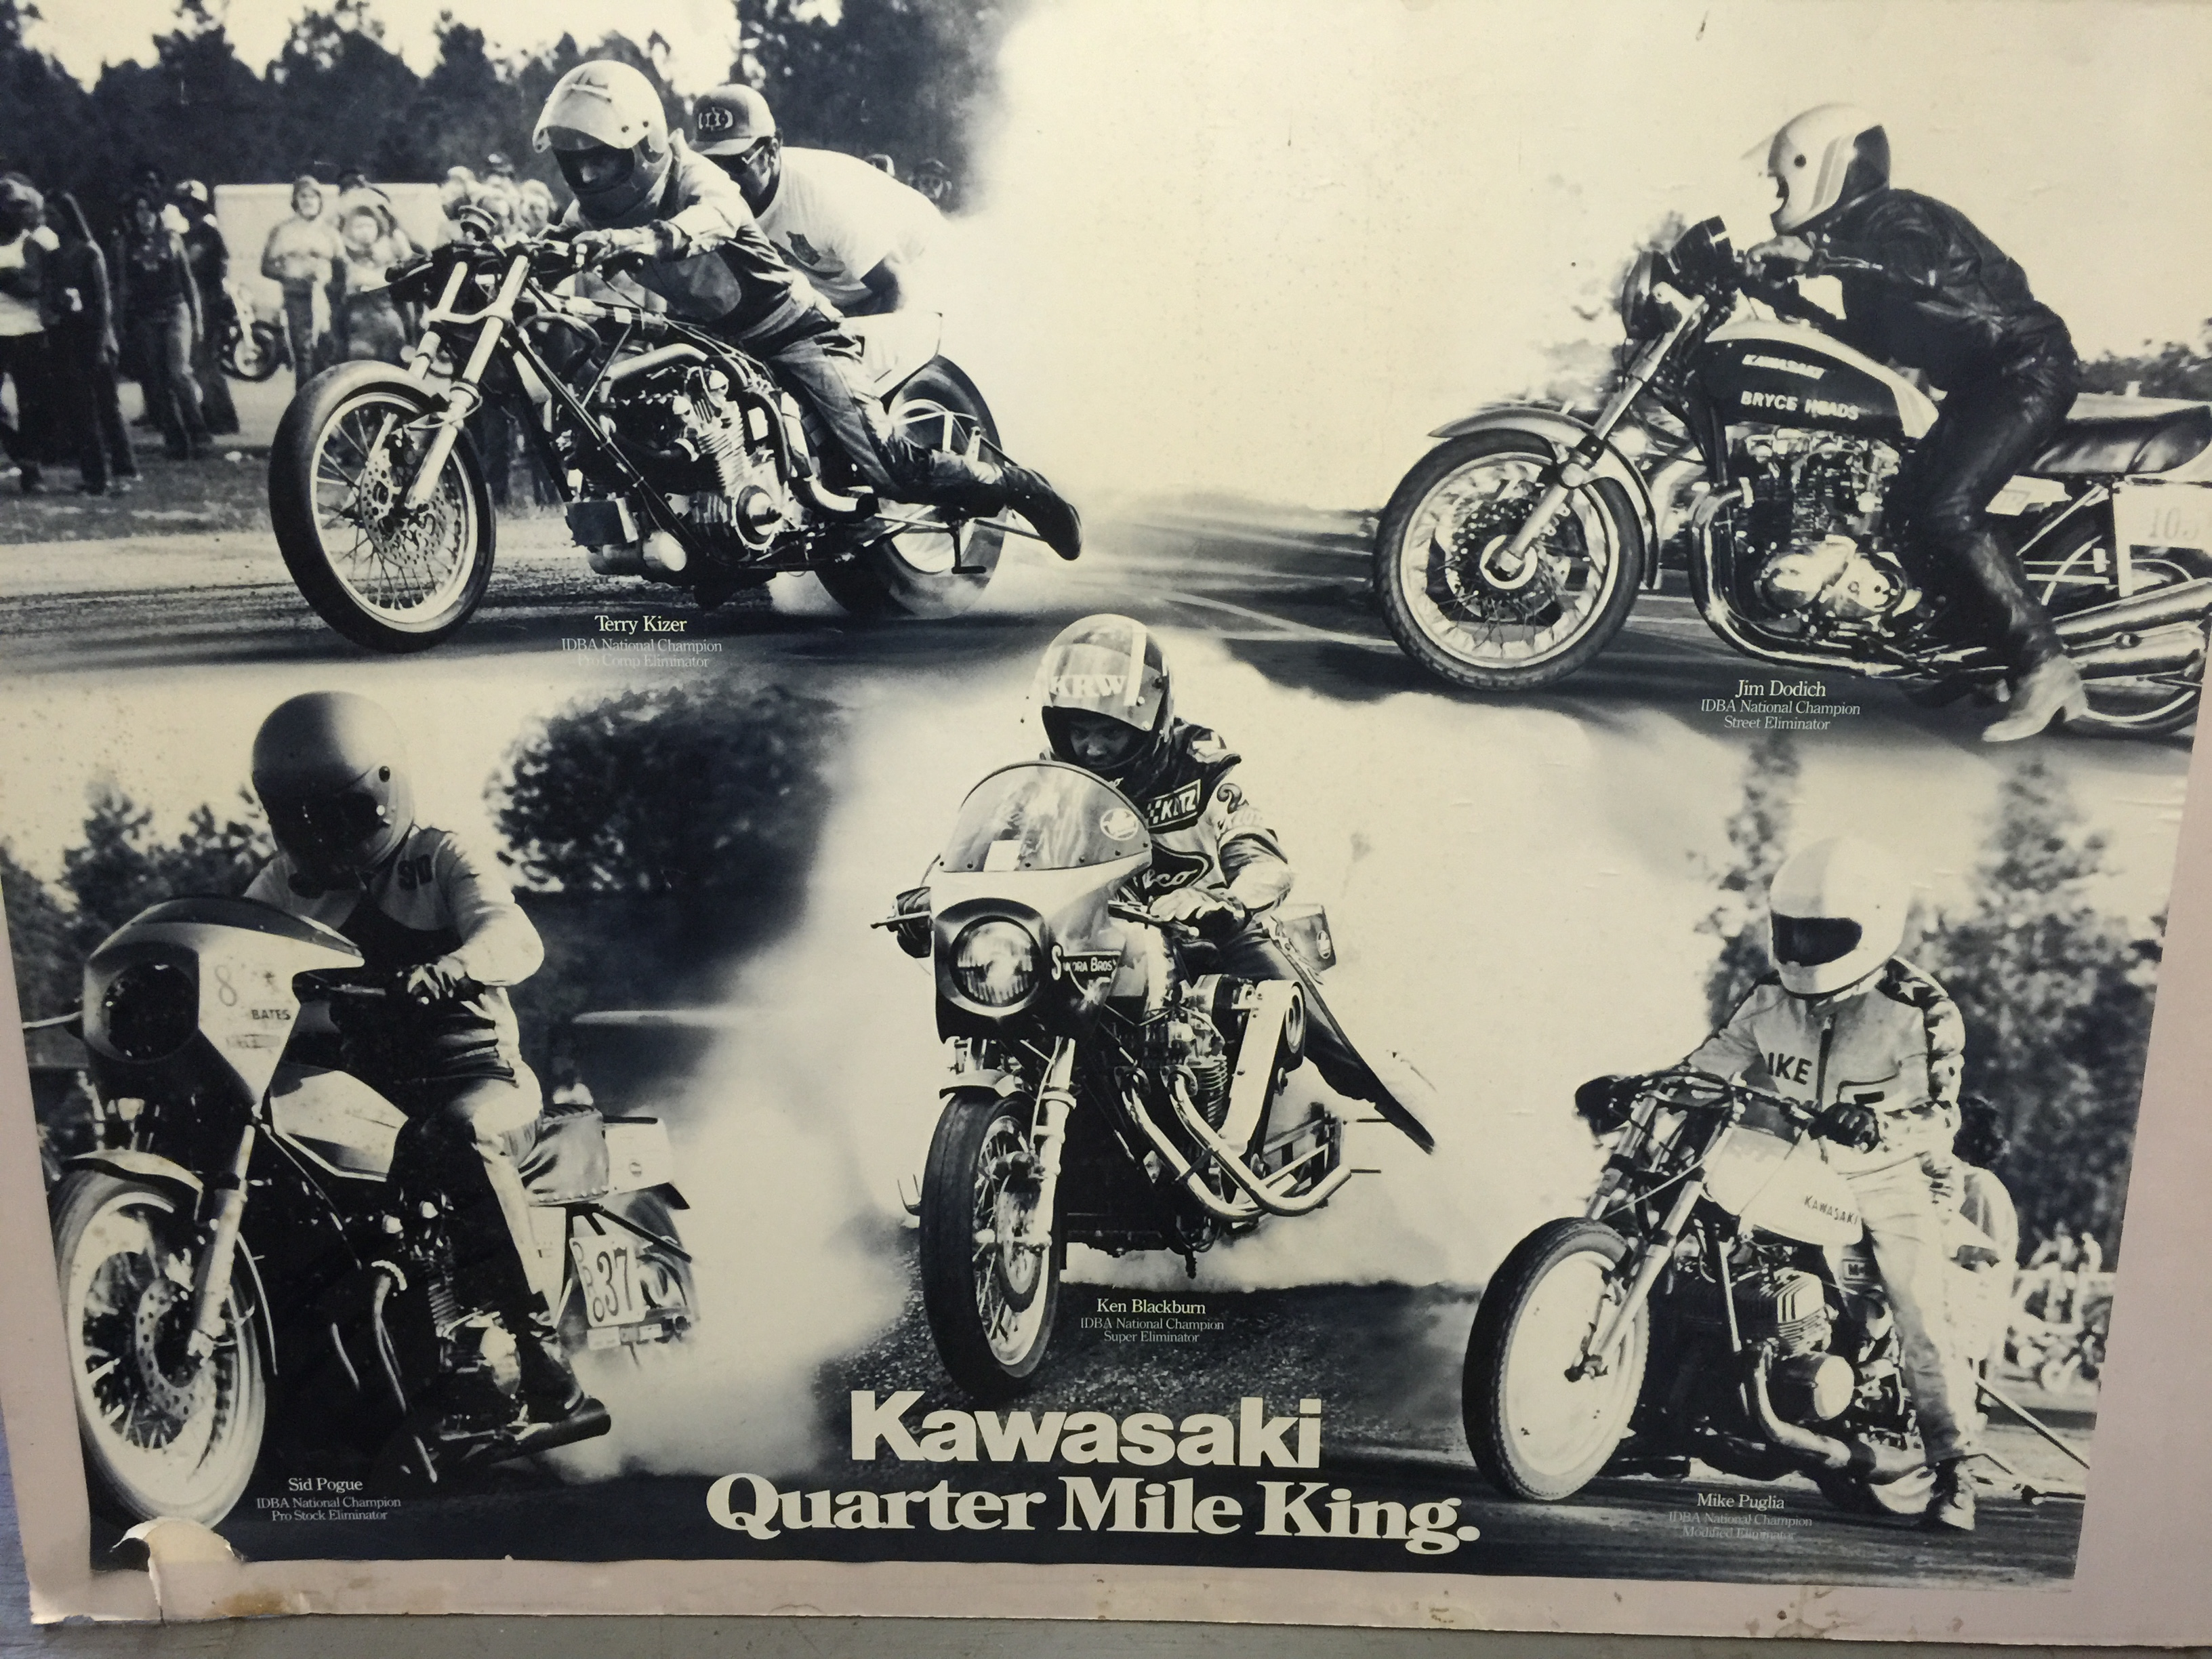 Dragbike Legend Terry Kizer Preparing for Top Fuel Motorcycle Debut